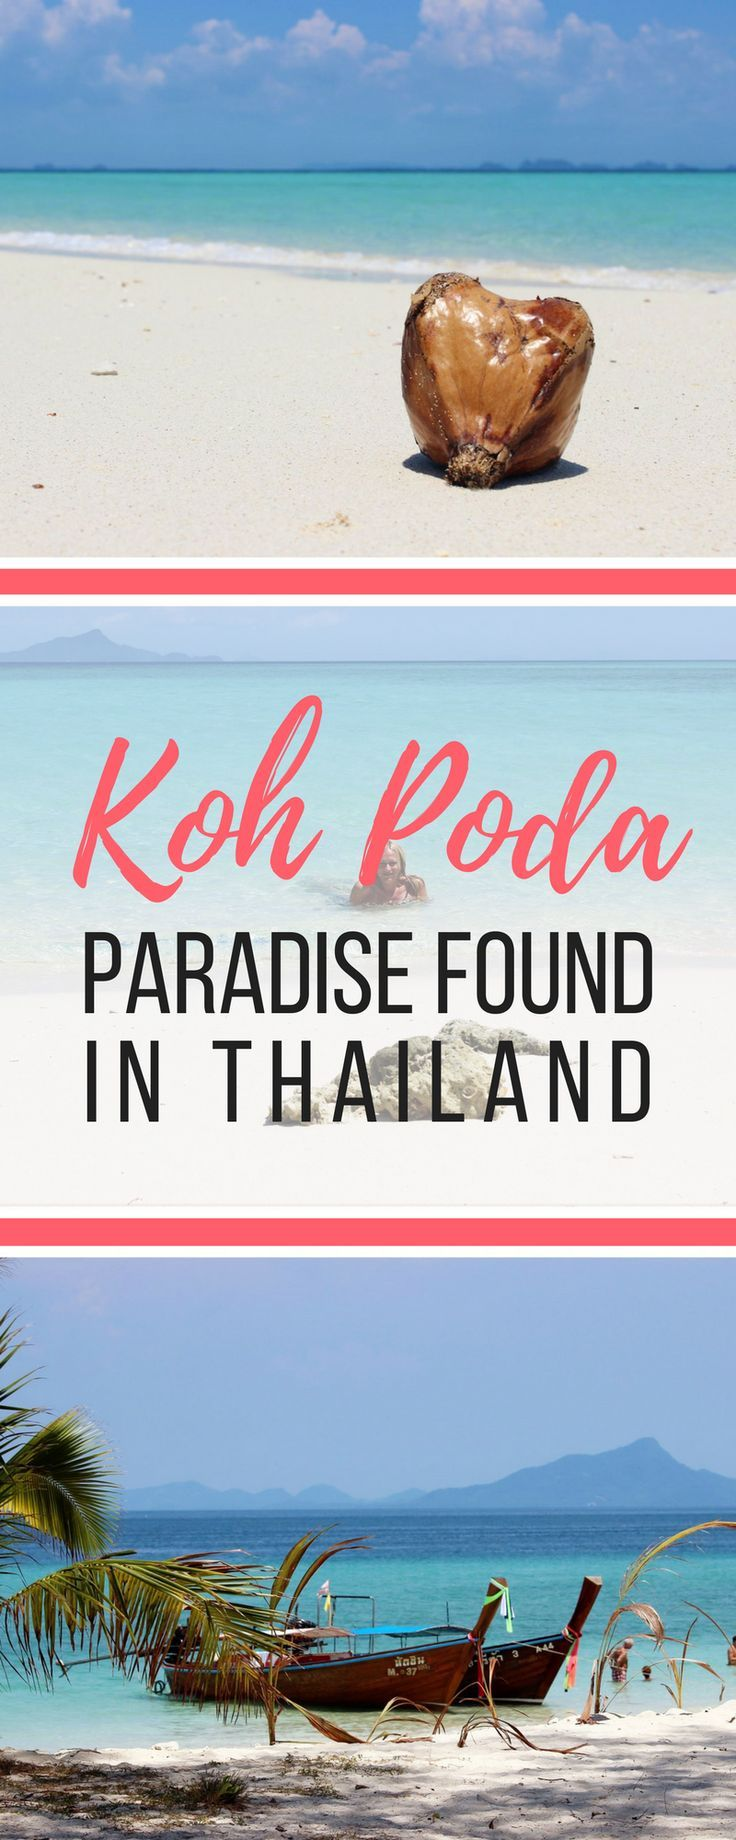 Koh Poda: Paradise Found in Thailand. Koh Poda is the Thai island paradise I had dreamed of: Crystal clear water and wide, white deserted sand beaches. This National Park island is free of resorts and although it is popular with day-trippers, you just need to walk a bit further along its pristine beaches to get away from the crowds. Koh Poda truly is paradise. | Globetrotter Girls